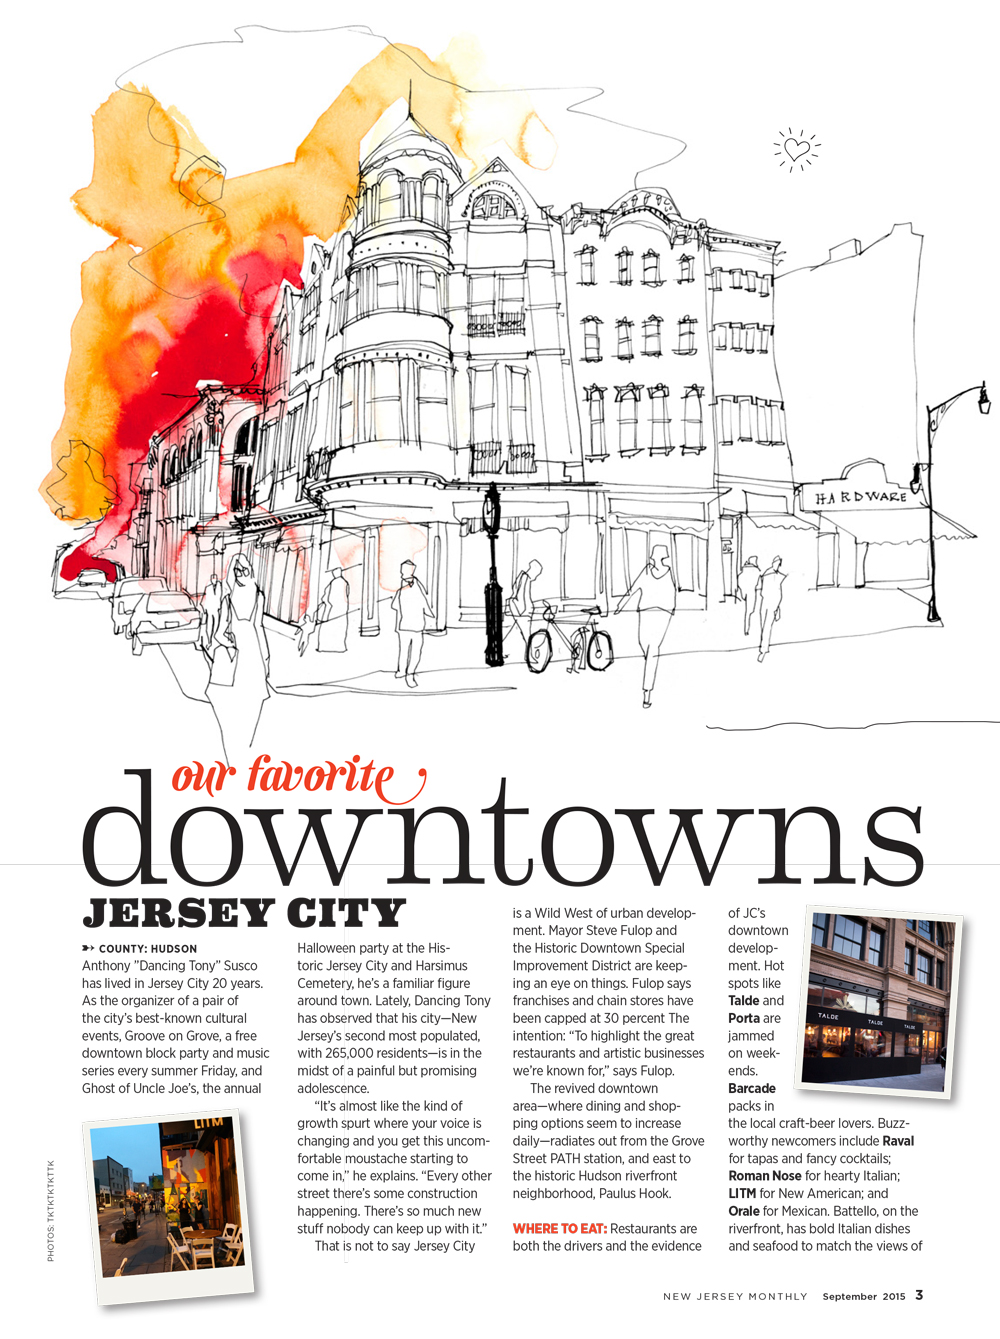 New Jersey Monthly Downtowns | Greg Betza